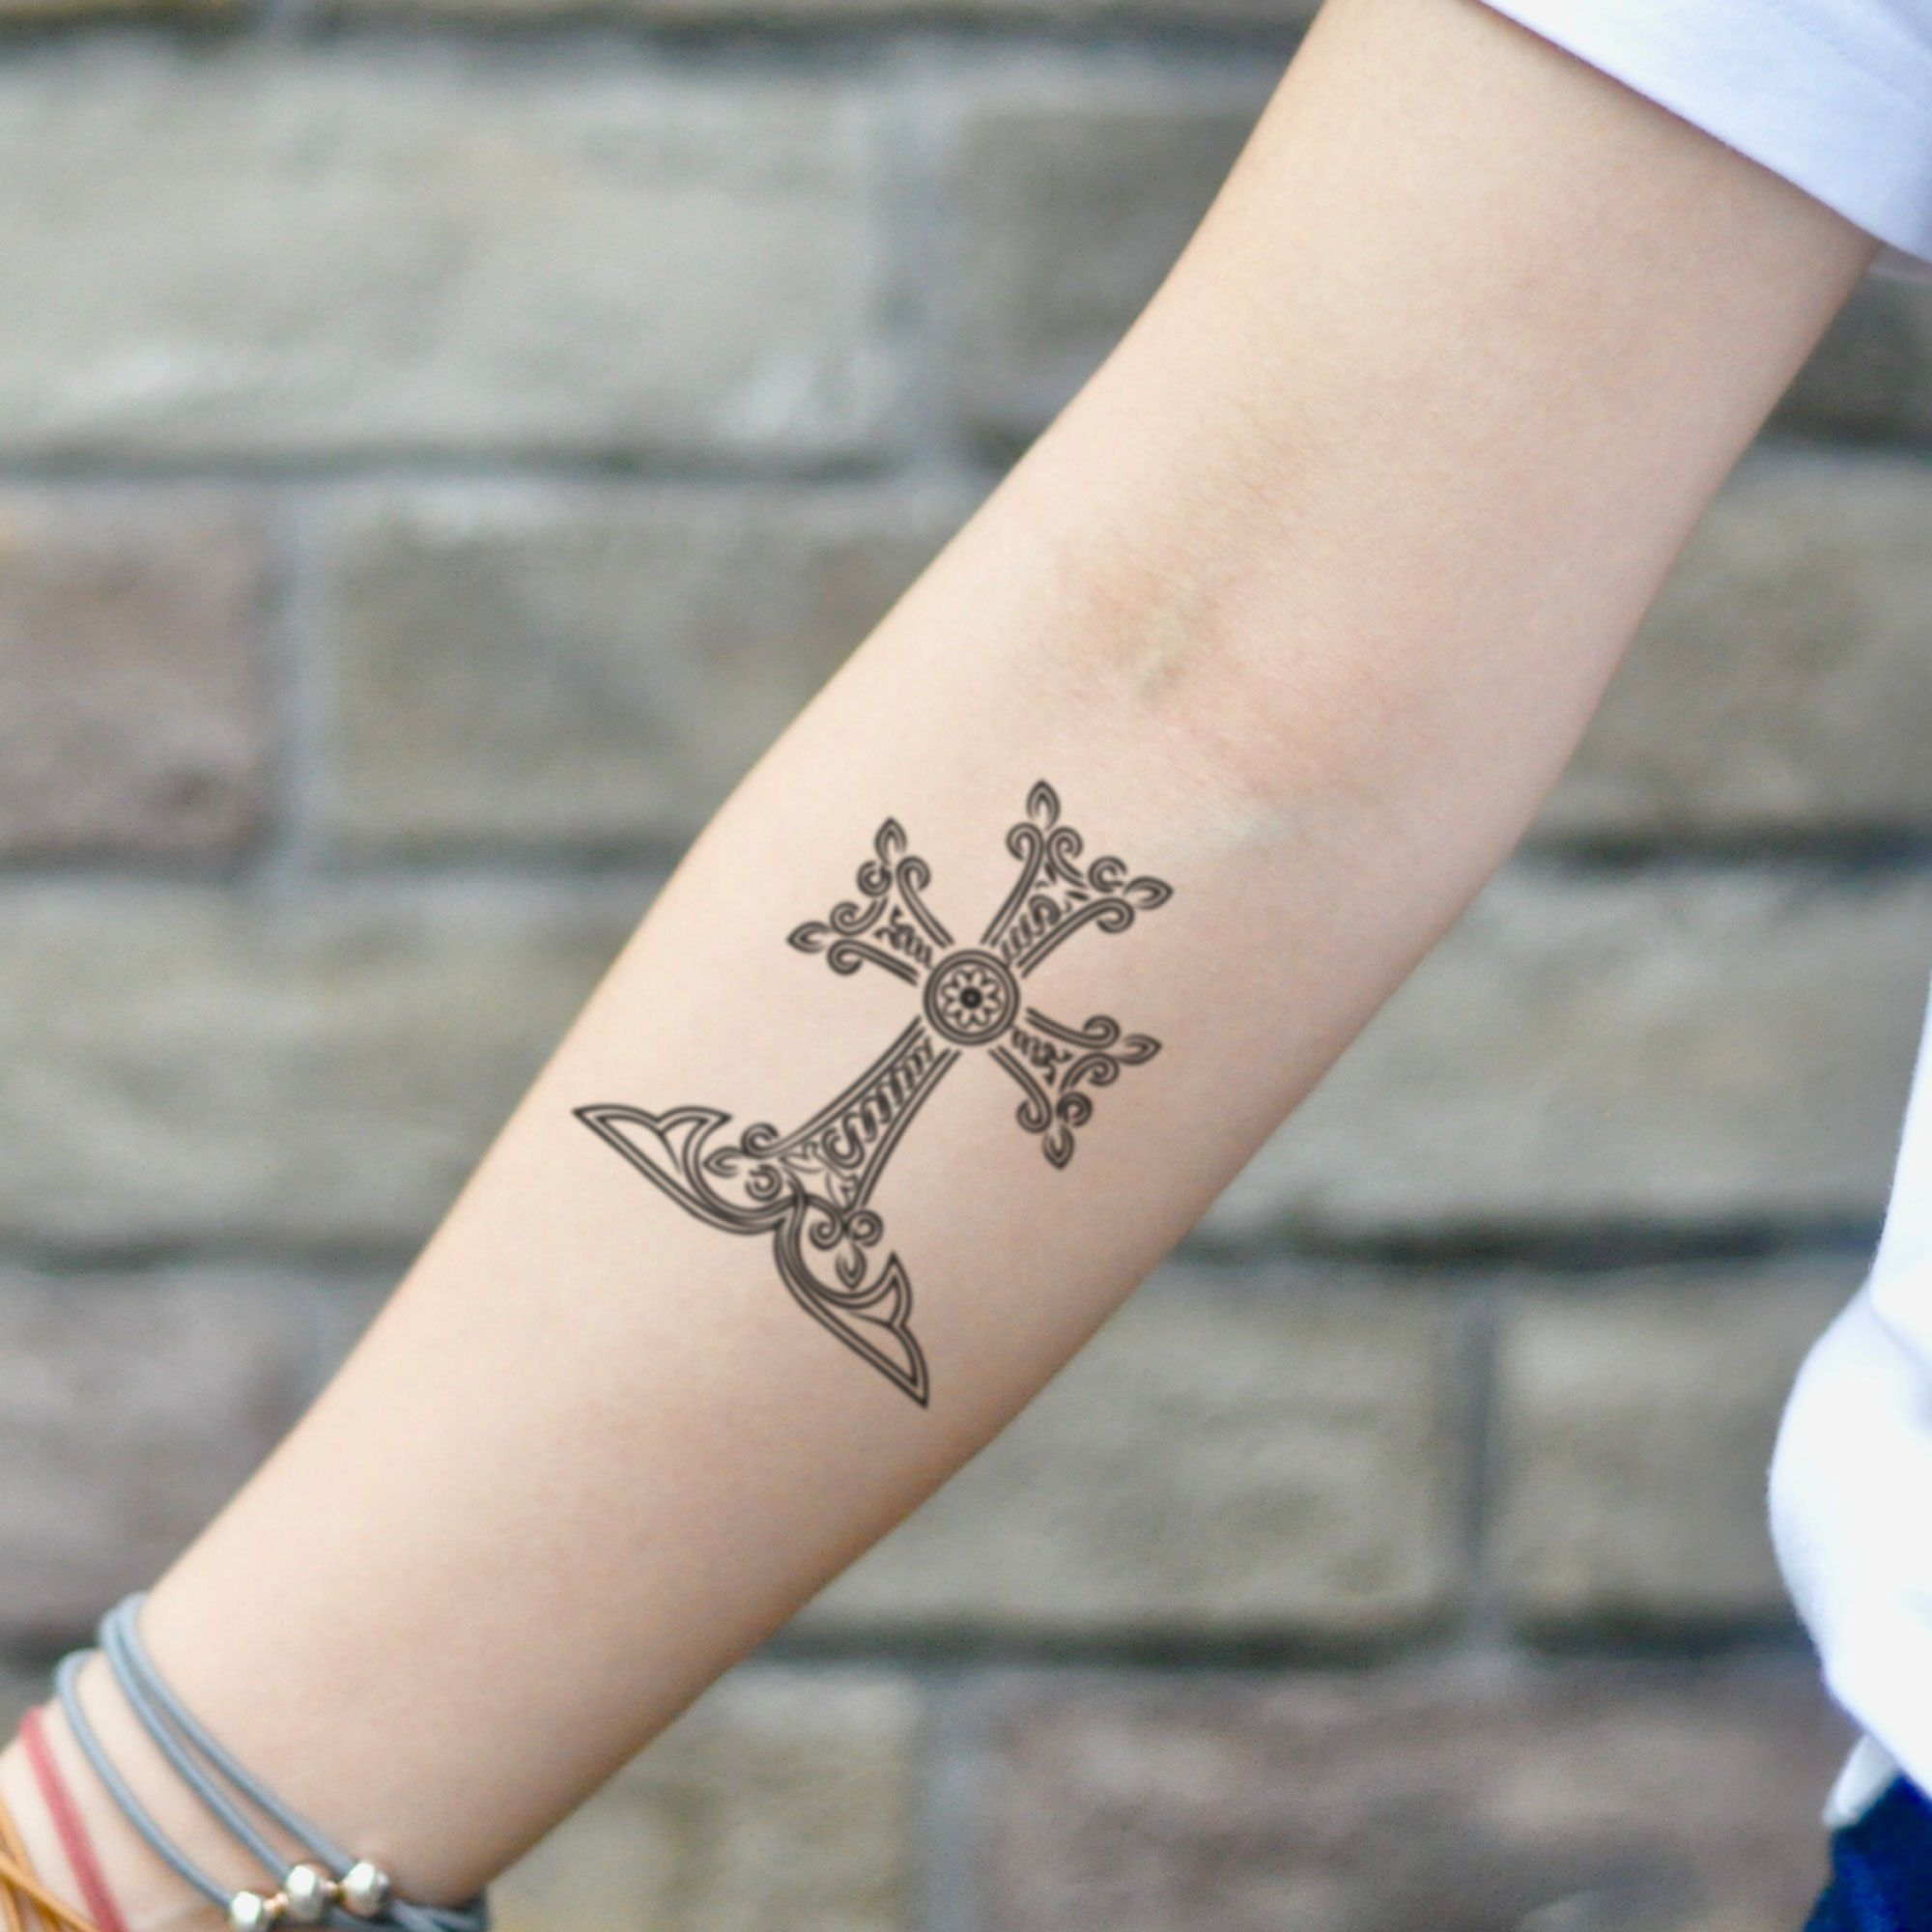 Armenian Cross Temporary Tattoo Sticker Set Of 2 In 2020 Custom Temporary Tattoos Tattoos Tattoo Stickers